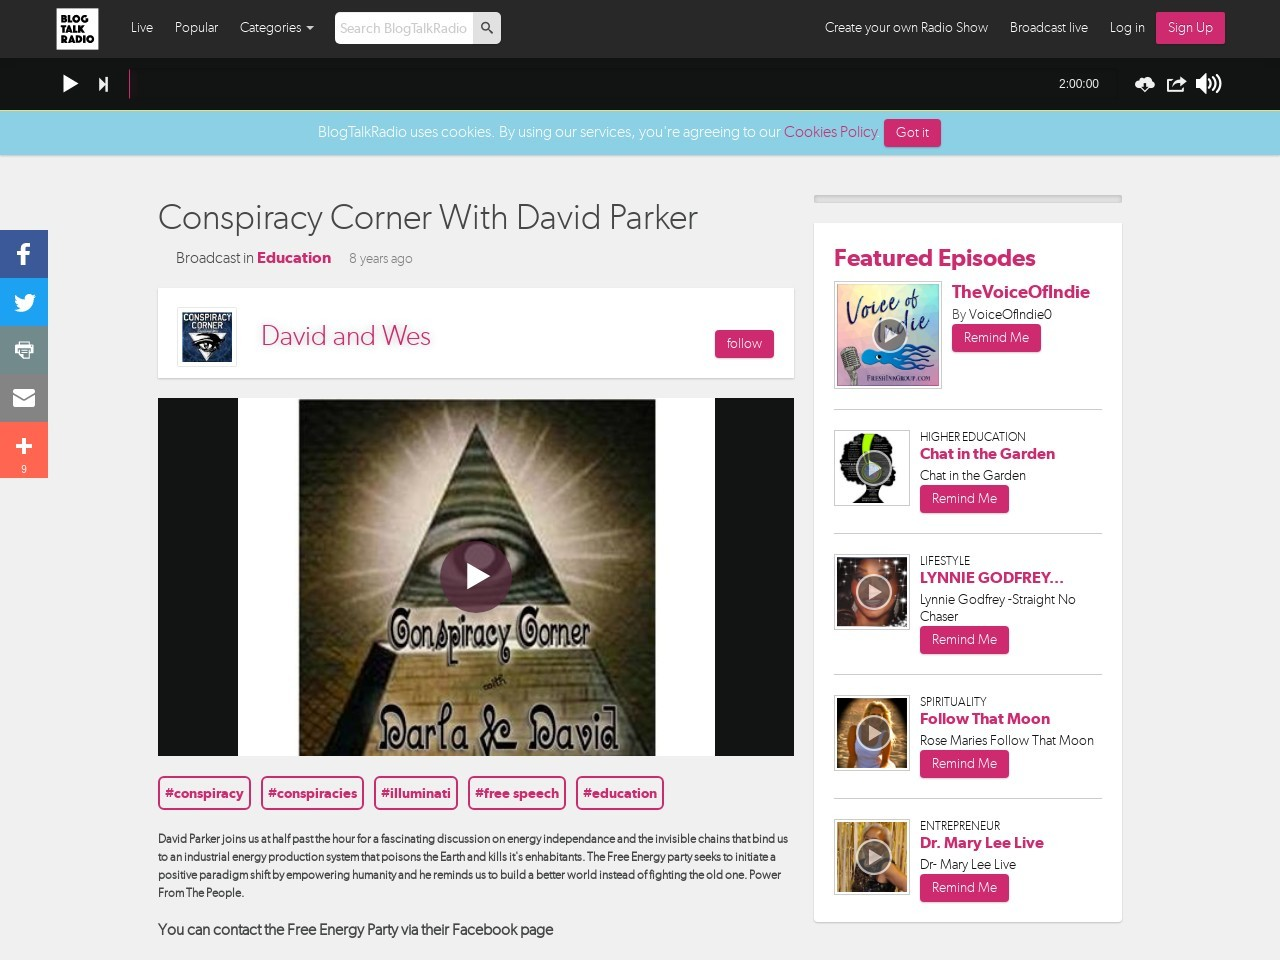 Conspiracy Corner With David Parker – Jan 16,2014